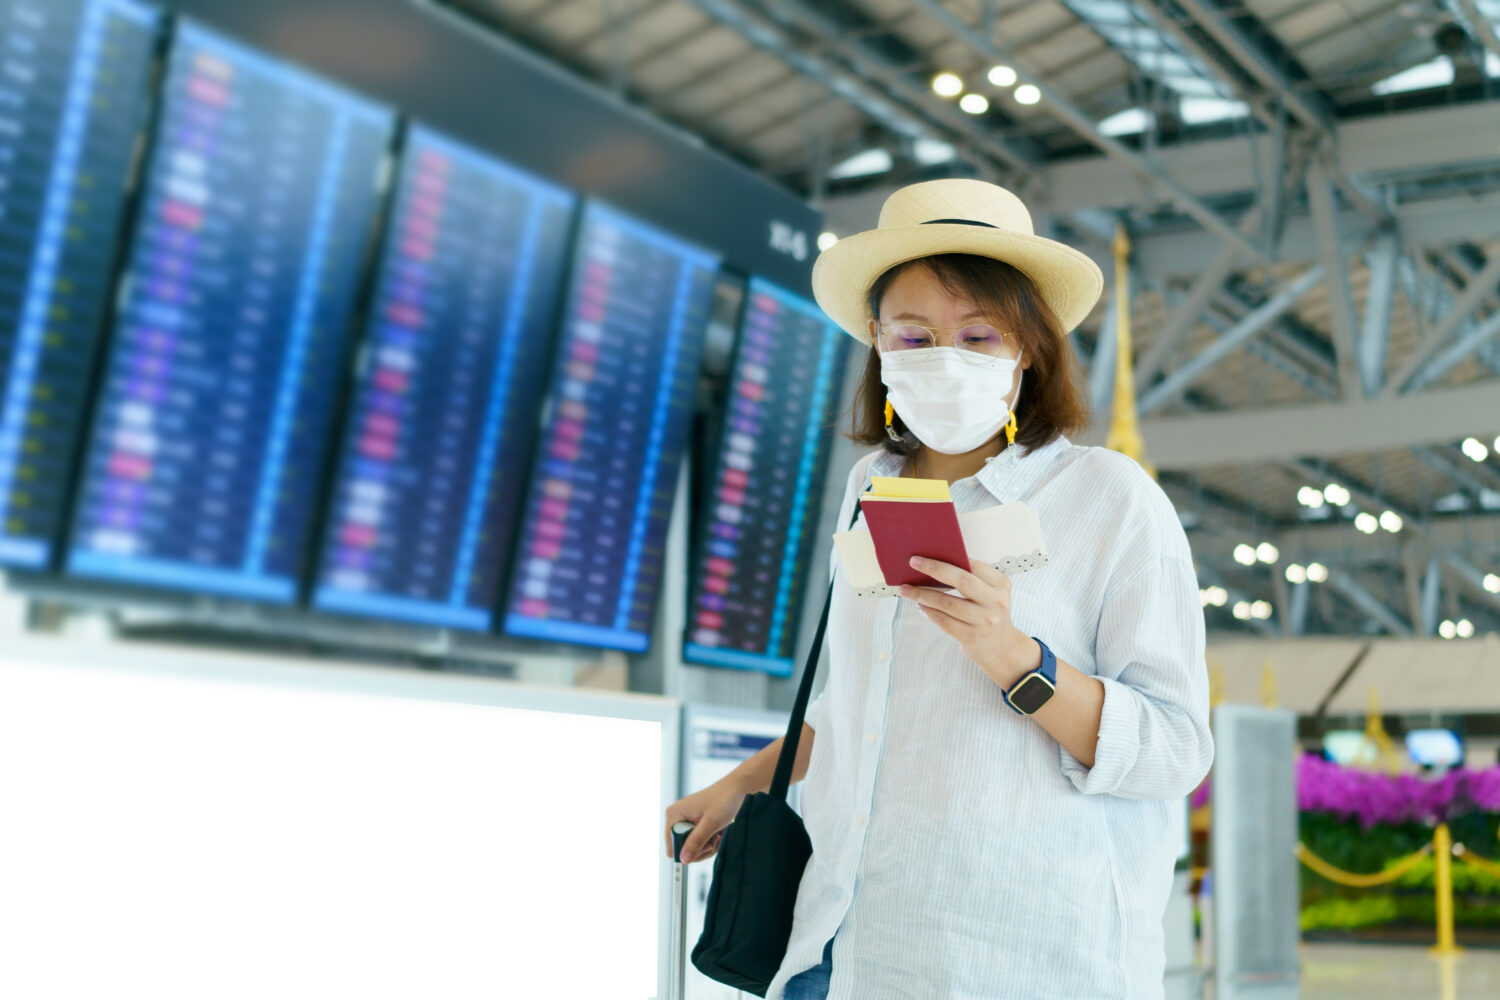 woman in a mask in airport terminal looking down at her phone